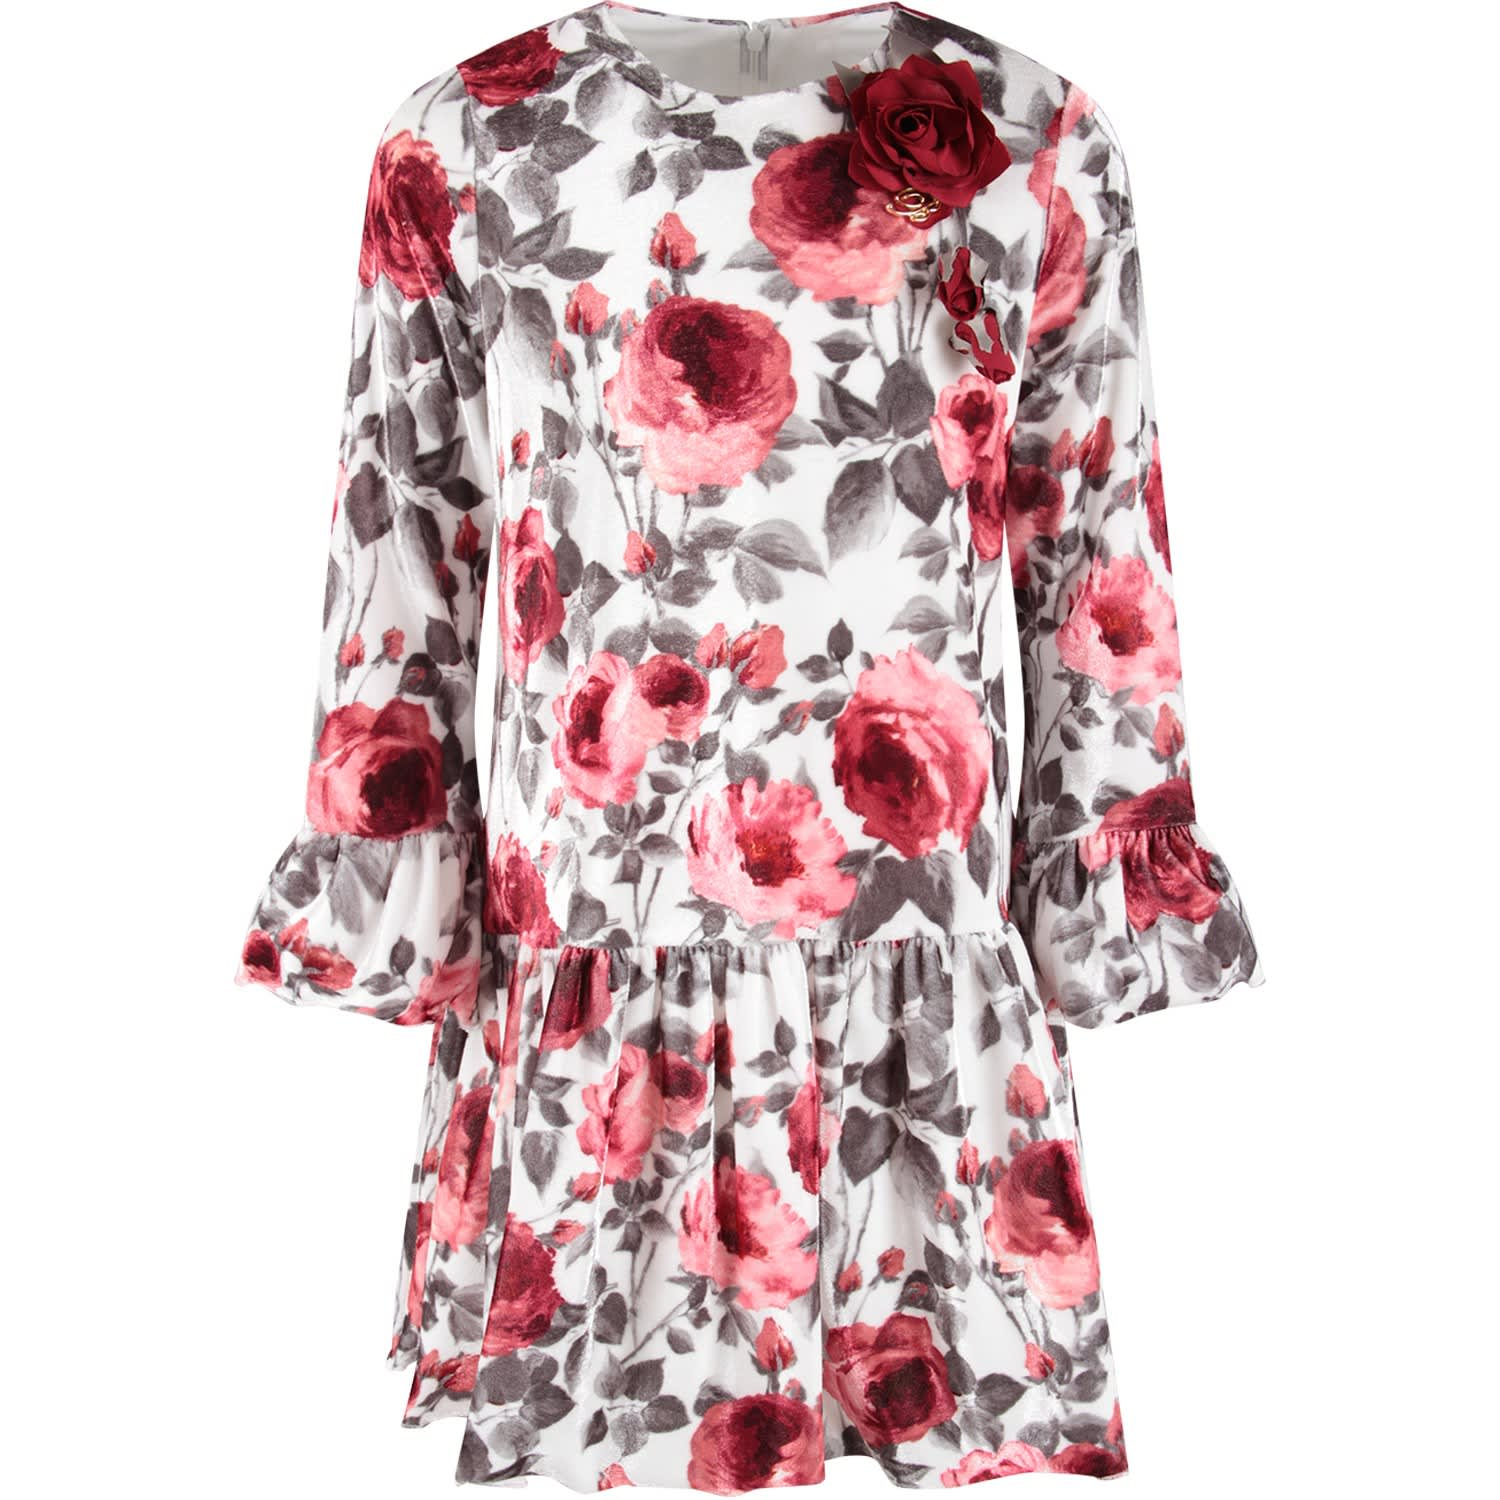 Buy Blumarine White Babygirl Dress With Red Roses online, shop Blumarine with free shipping